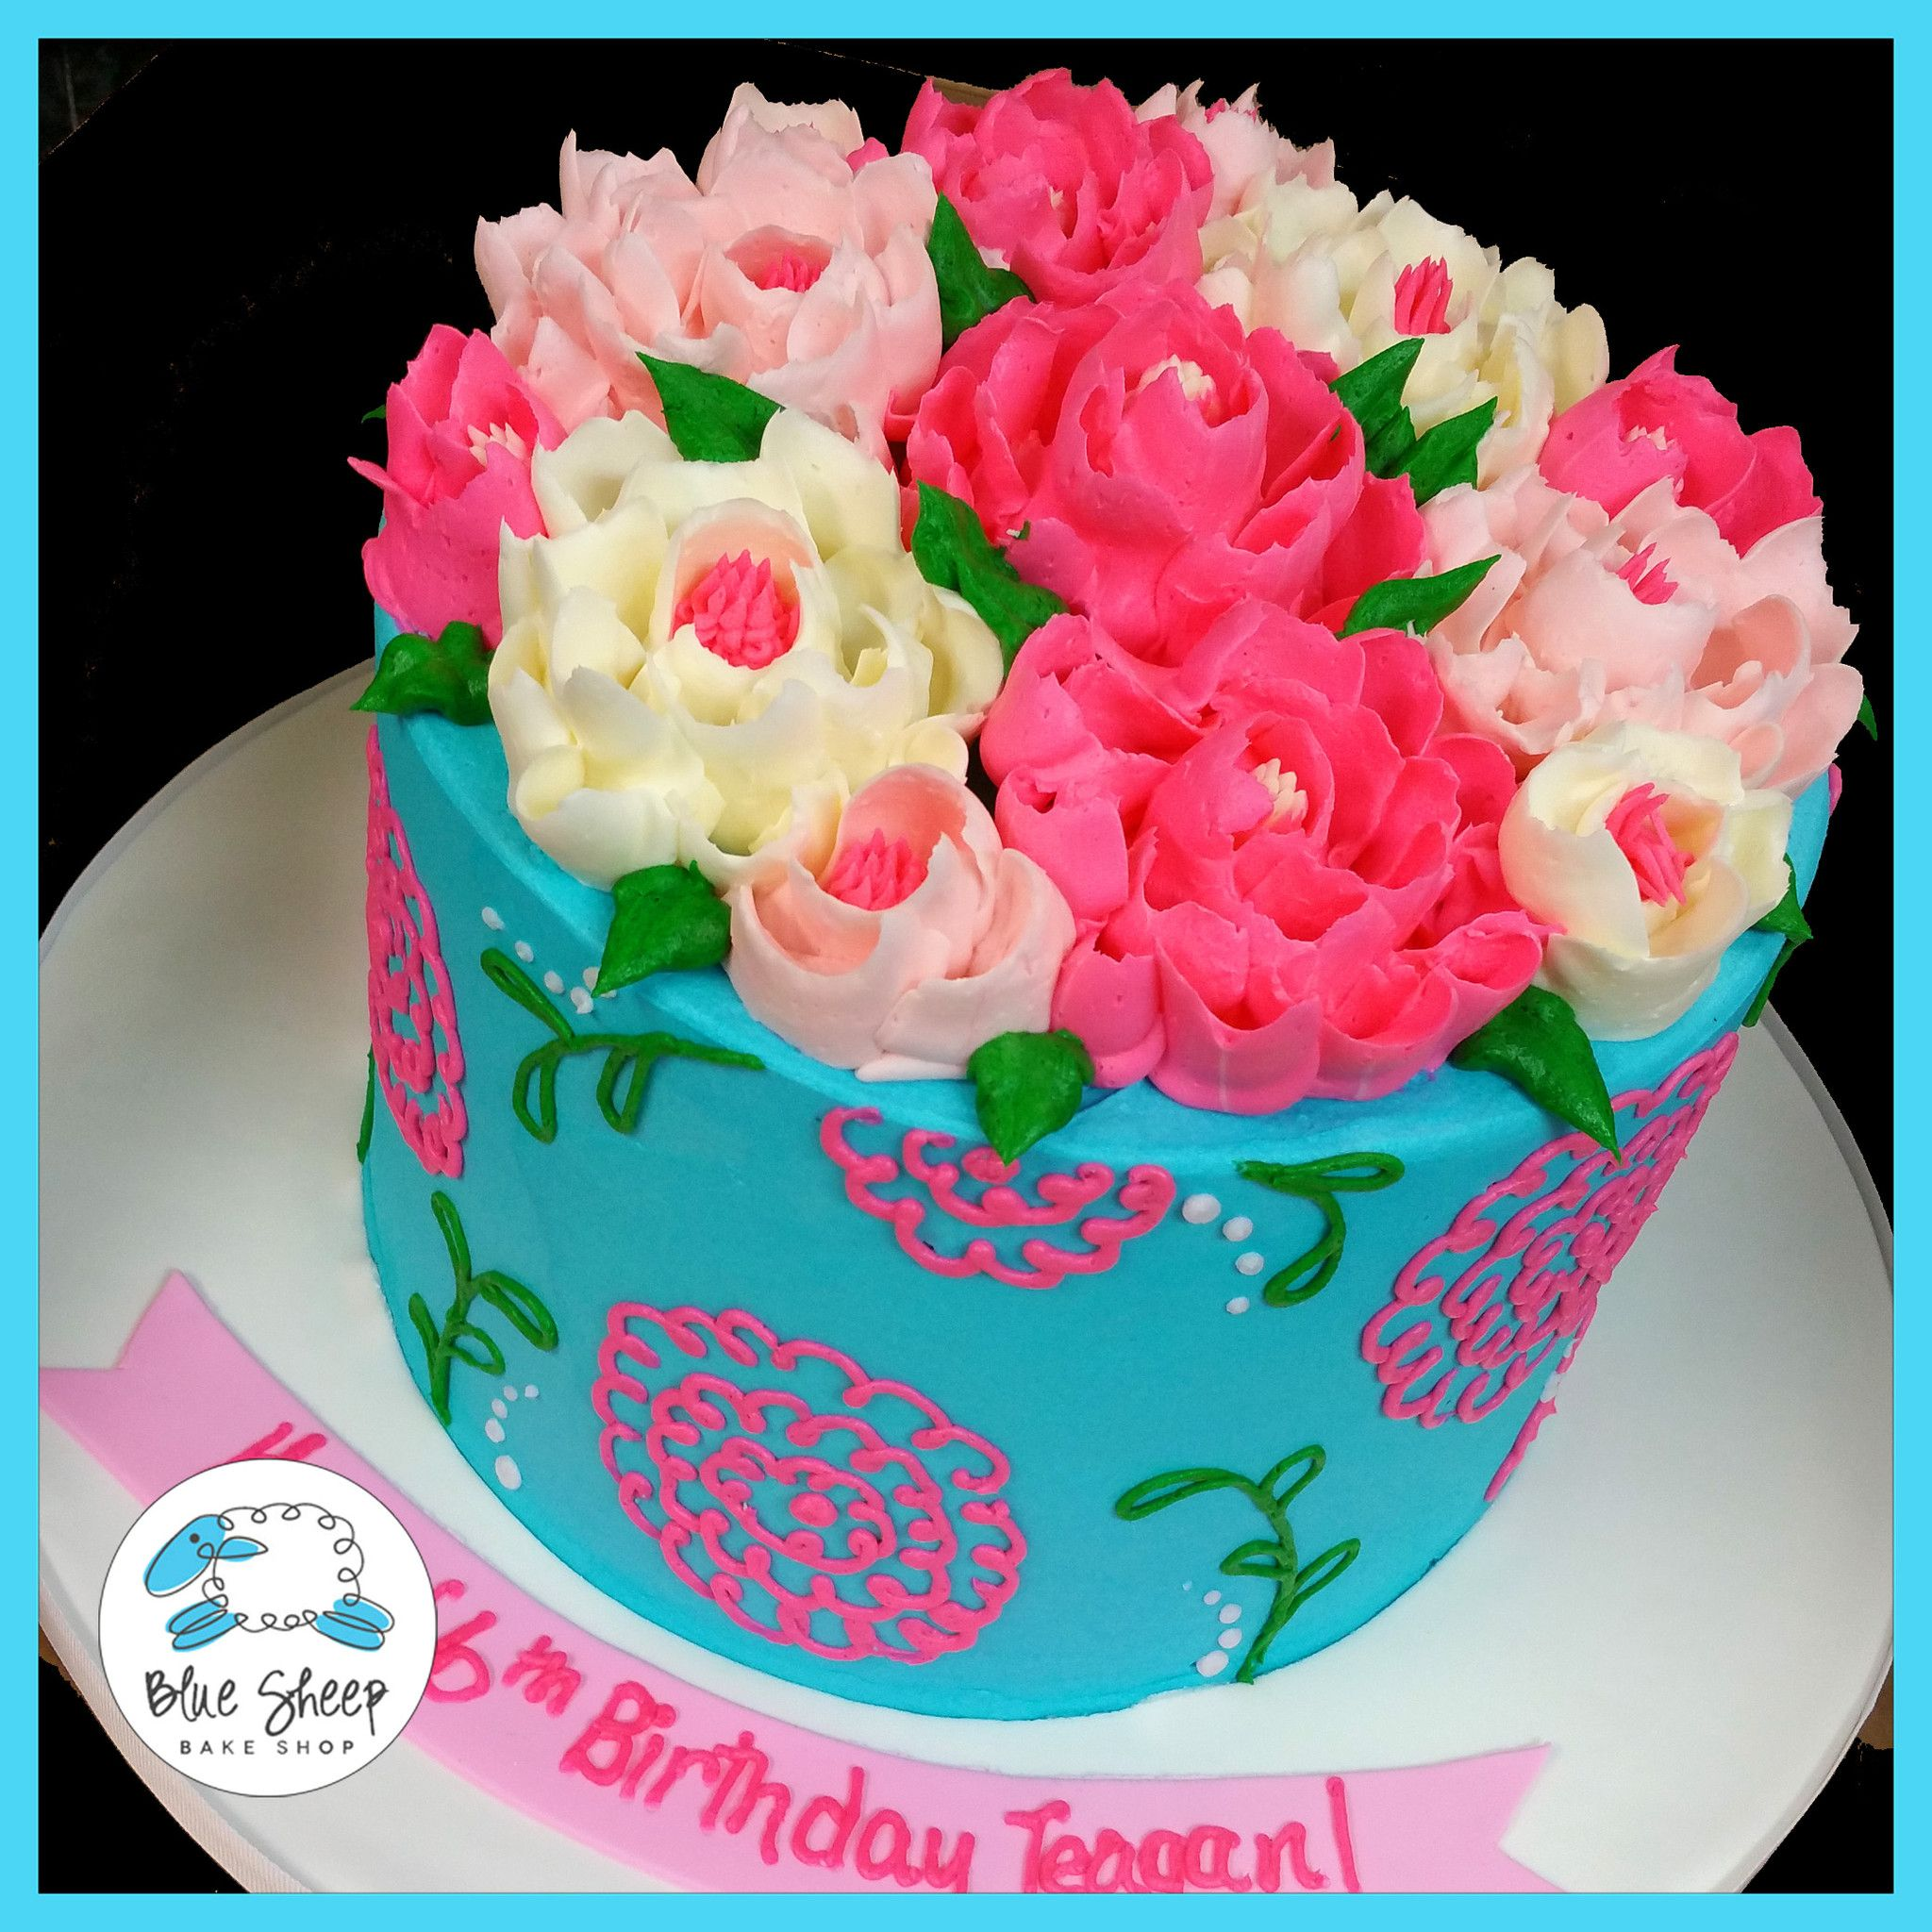 Ribbon Flower Buttercream Birthday Cake Blue Sheep Bake Shop